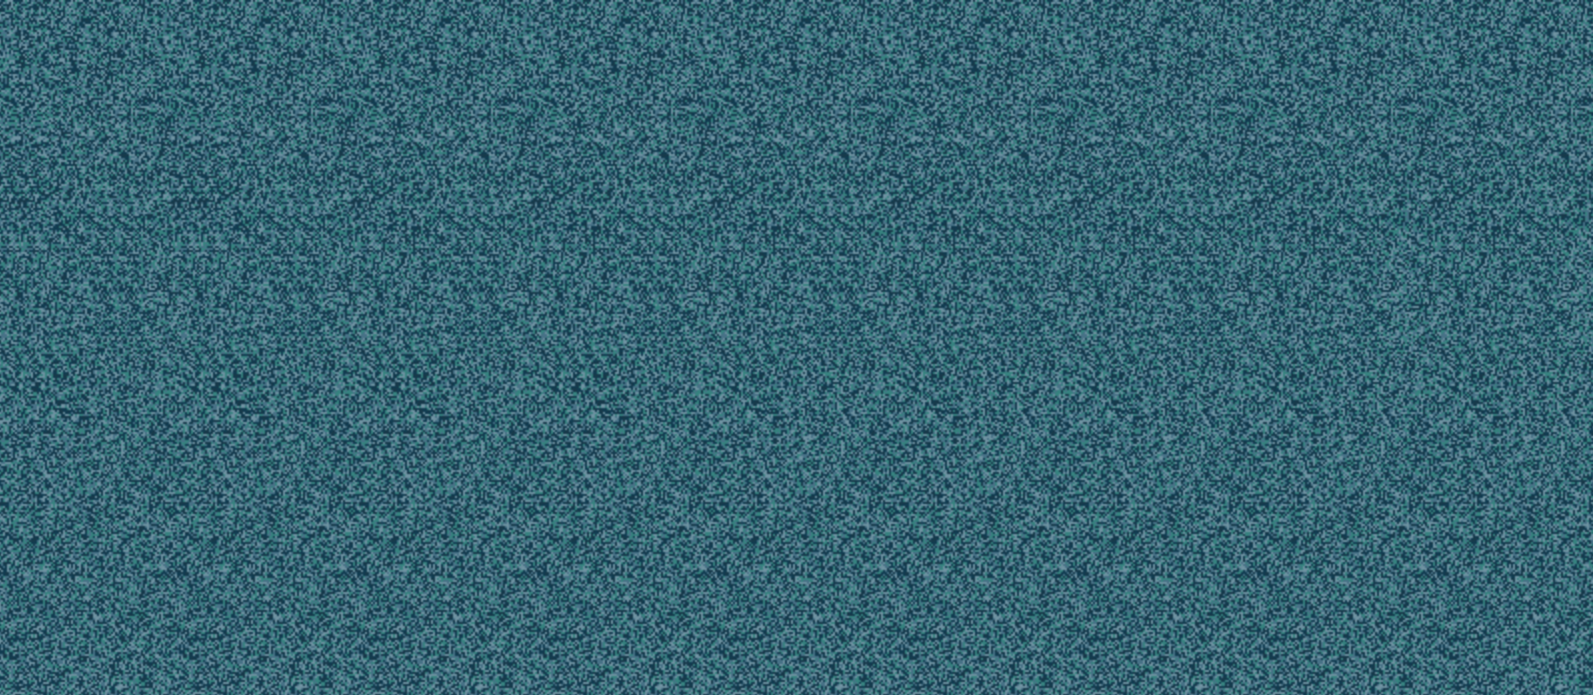 Github Brandonlilly Stereo Pong Pong Rendered As An Autostereogram